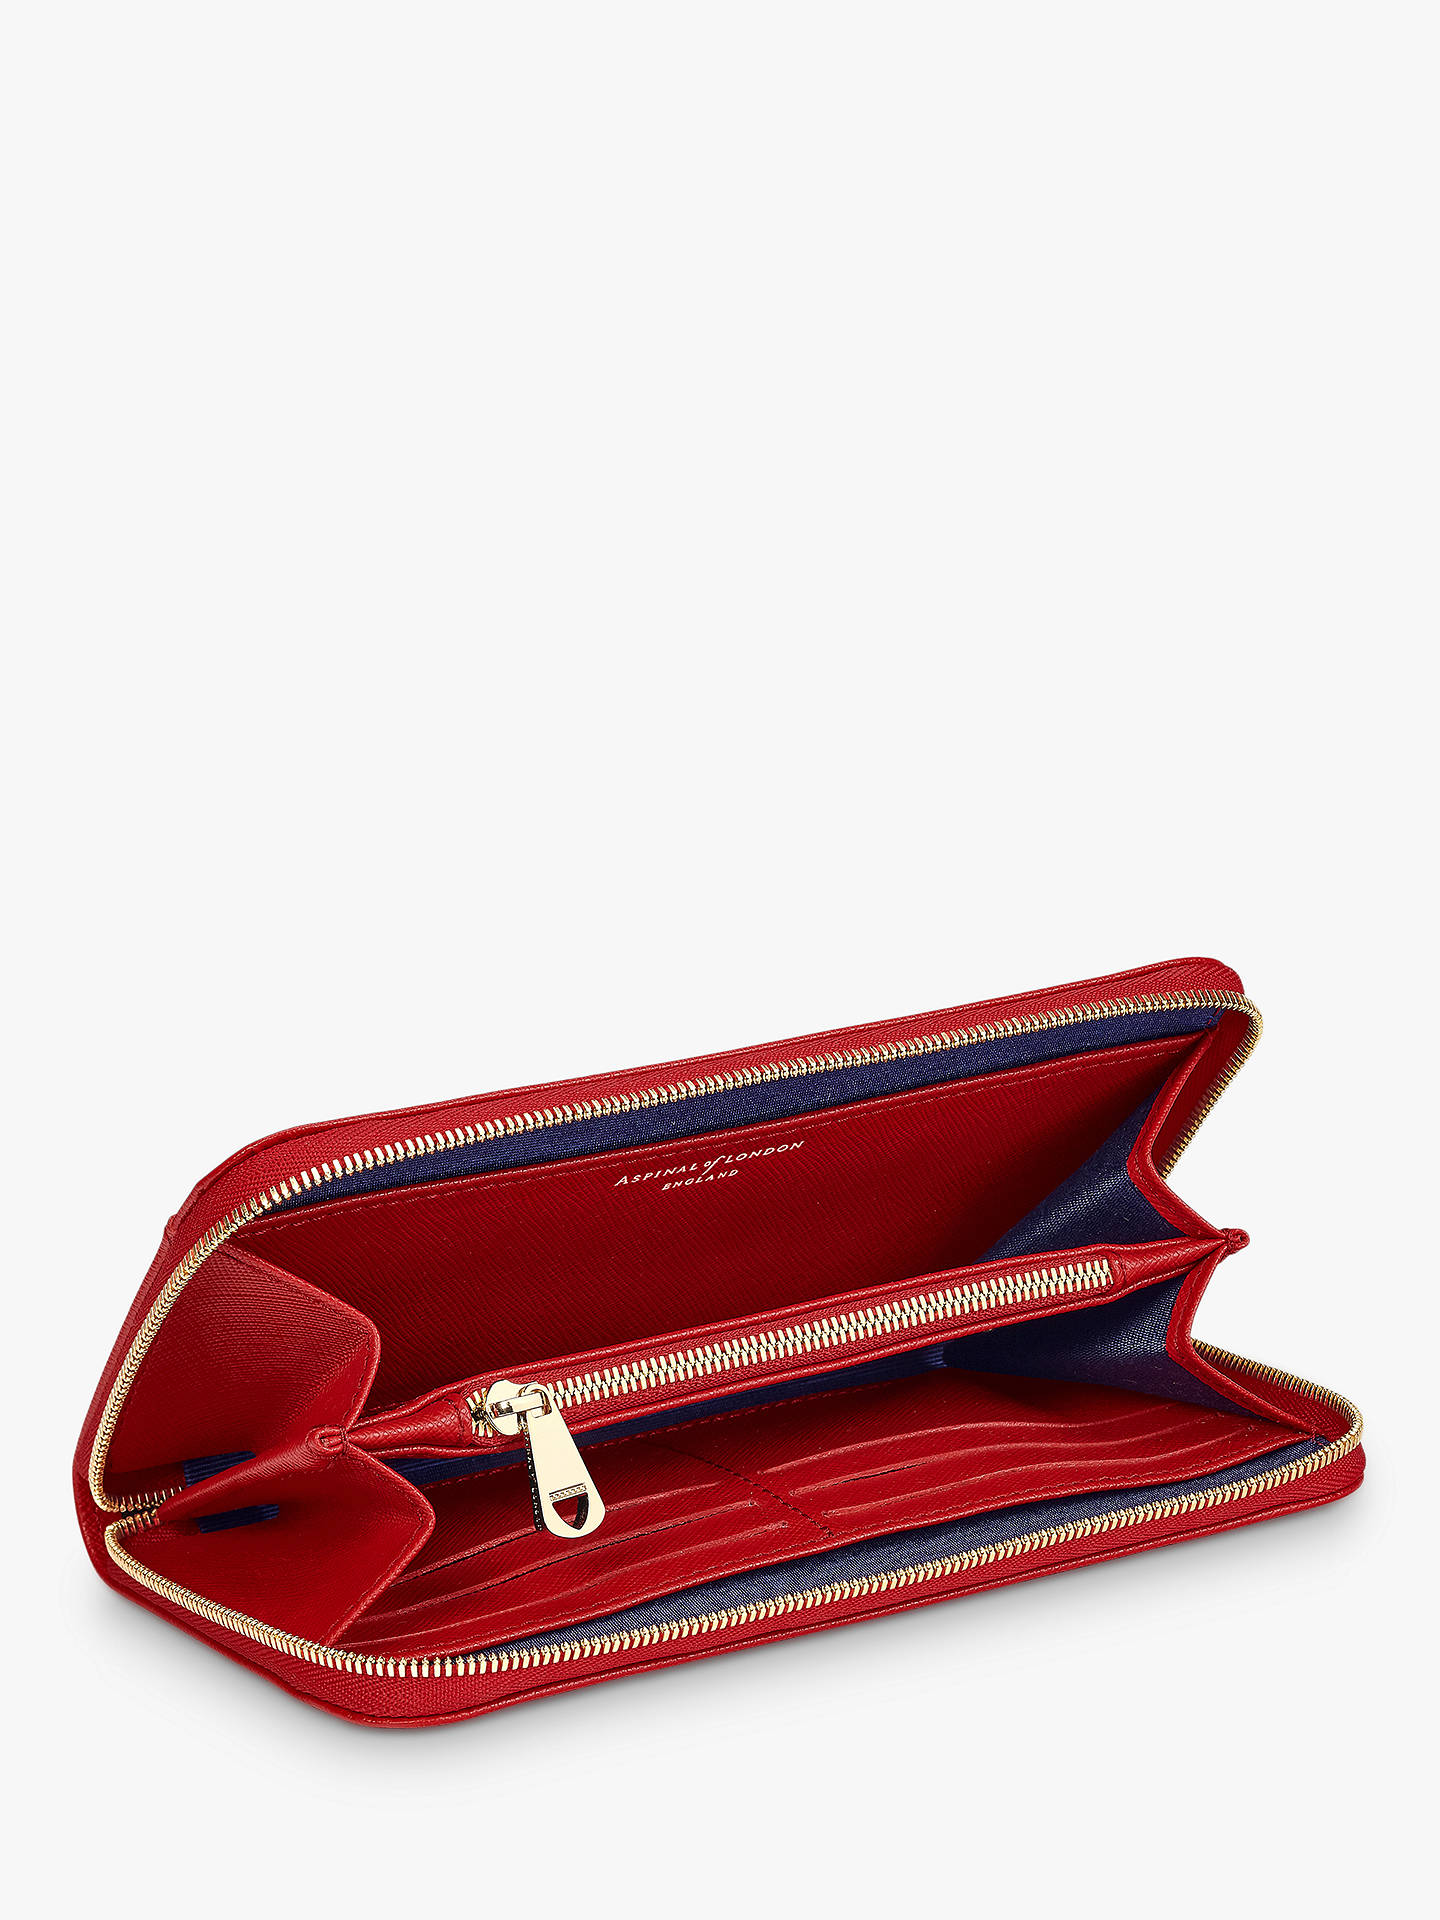 BuyAspinal of London Leather Continental Clutch Purse, Scarlet Online at johnlewis.com